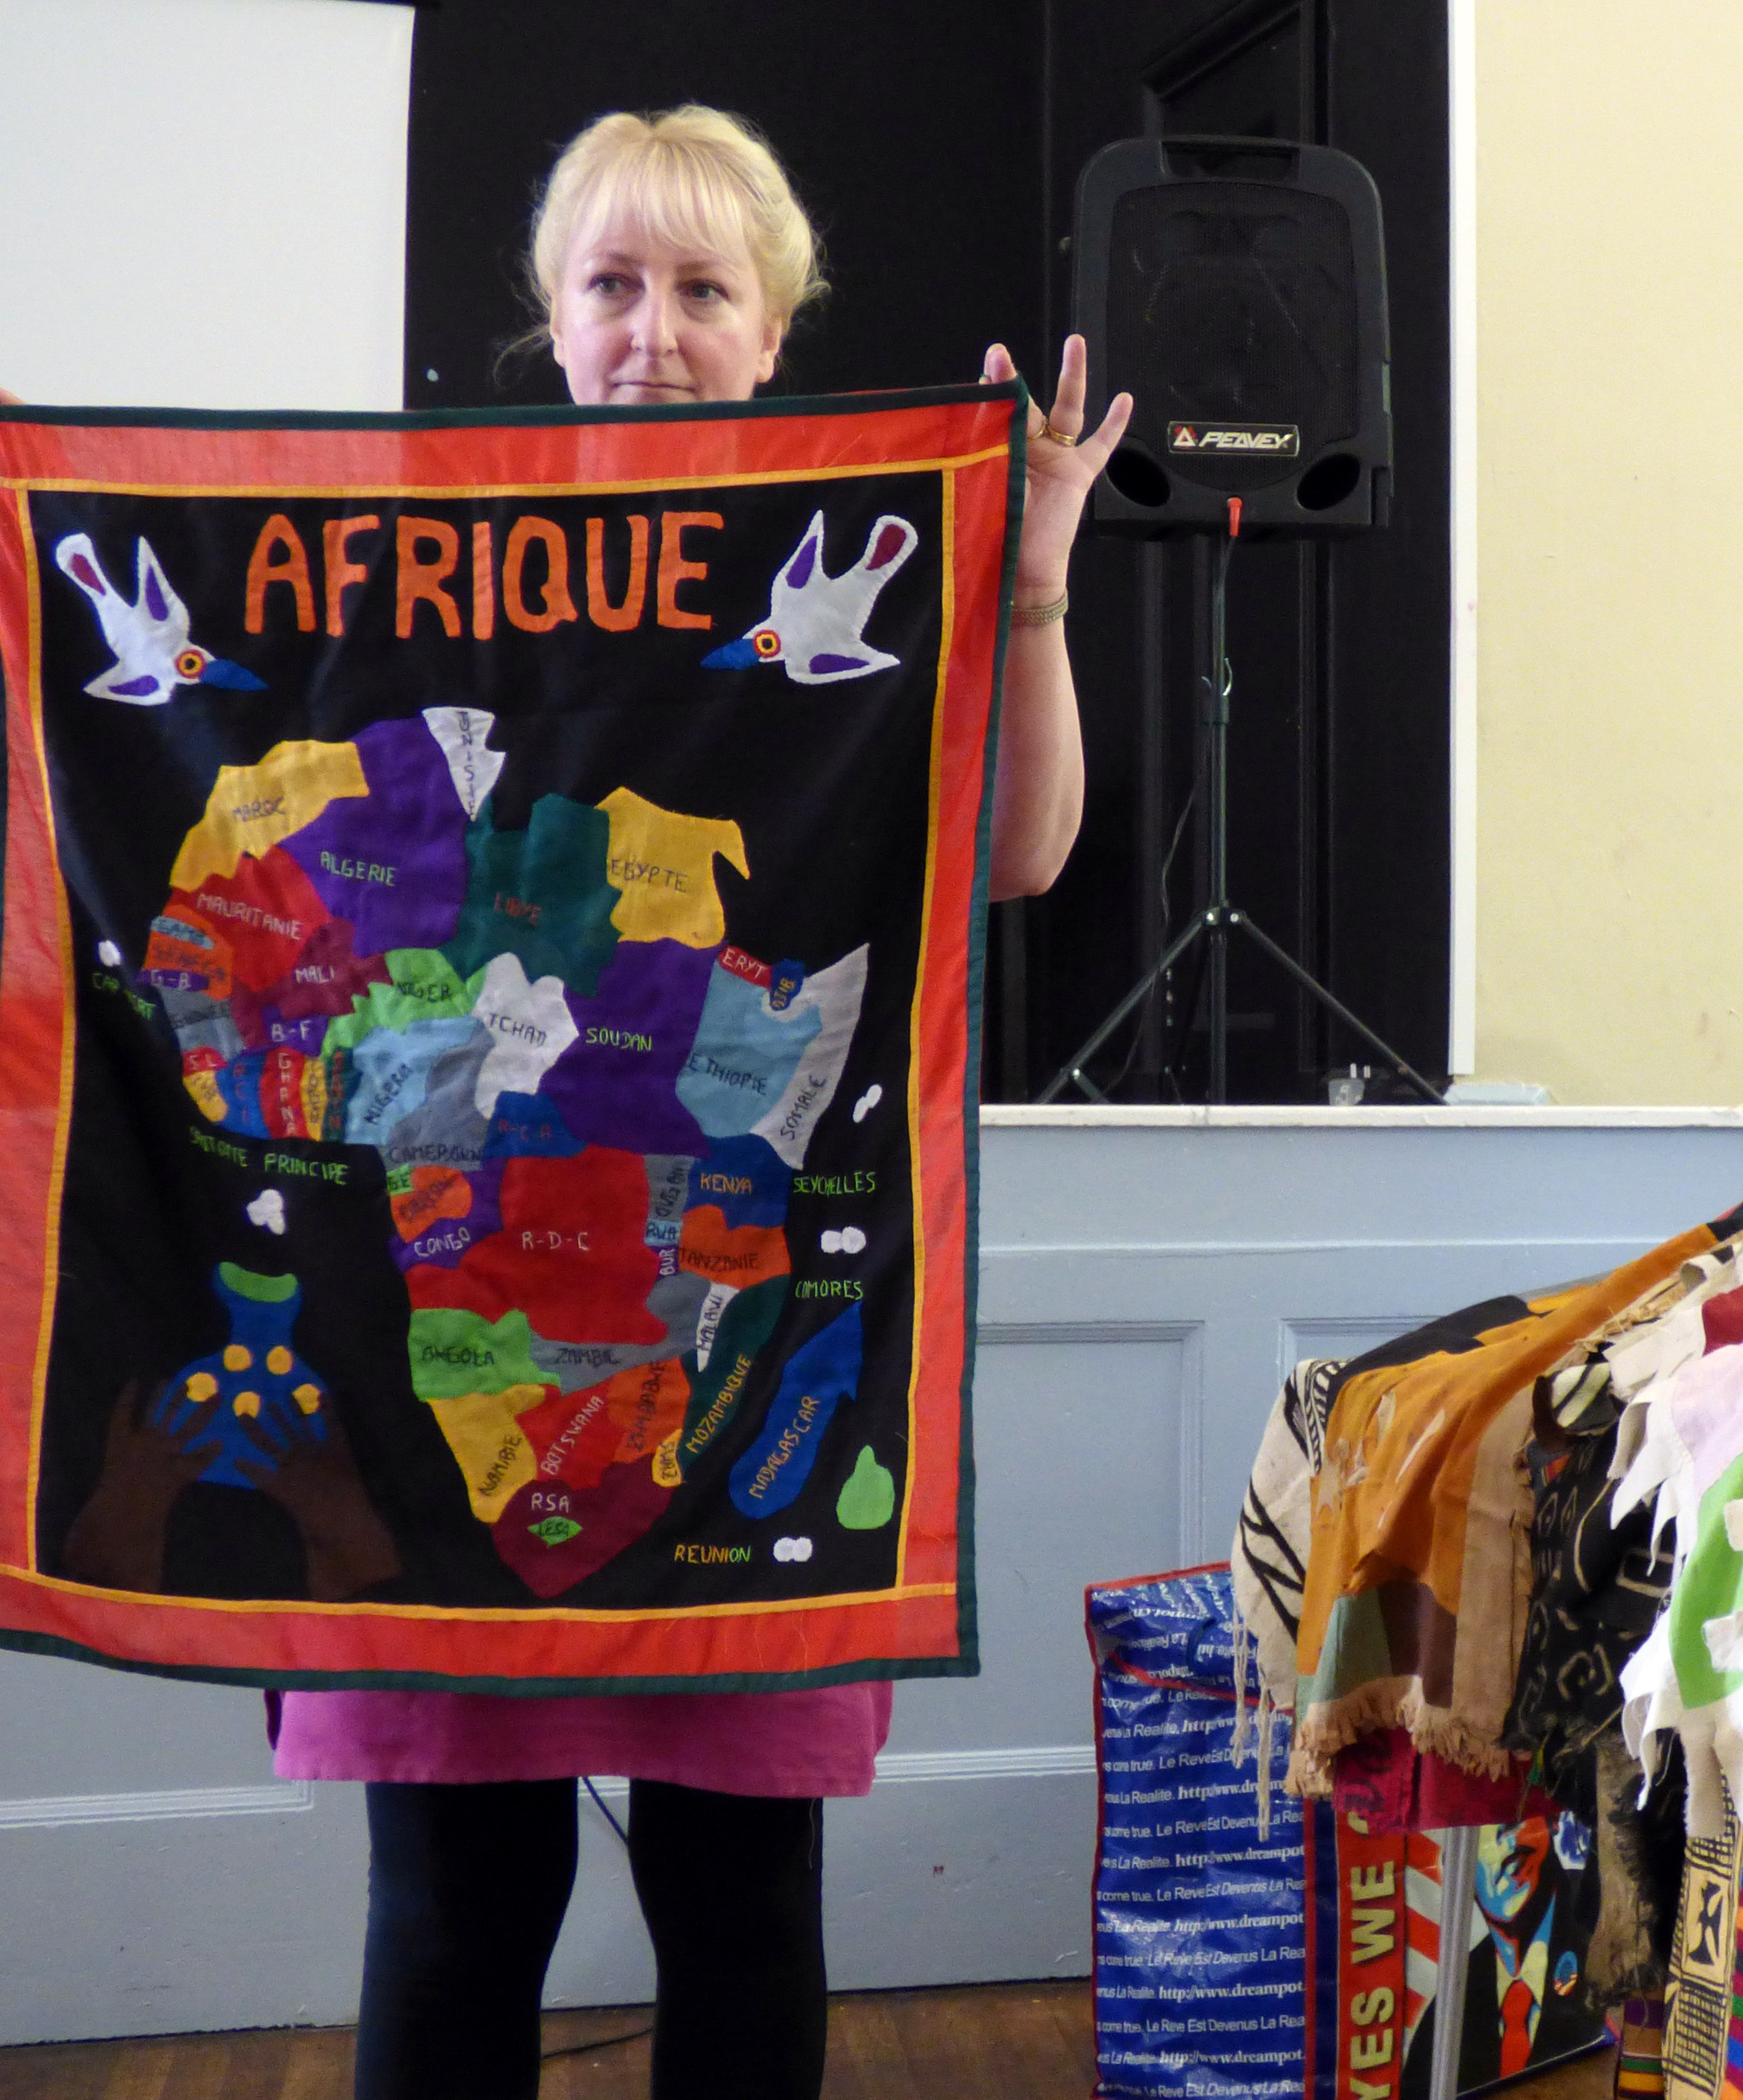 applique map of Africa displayed by Sarah Lowes